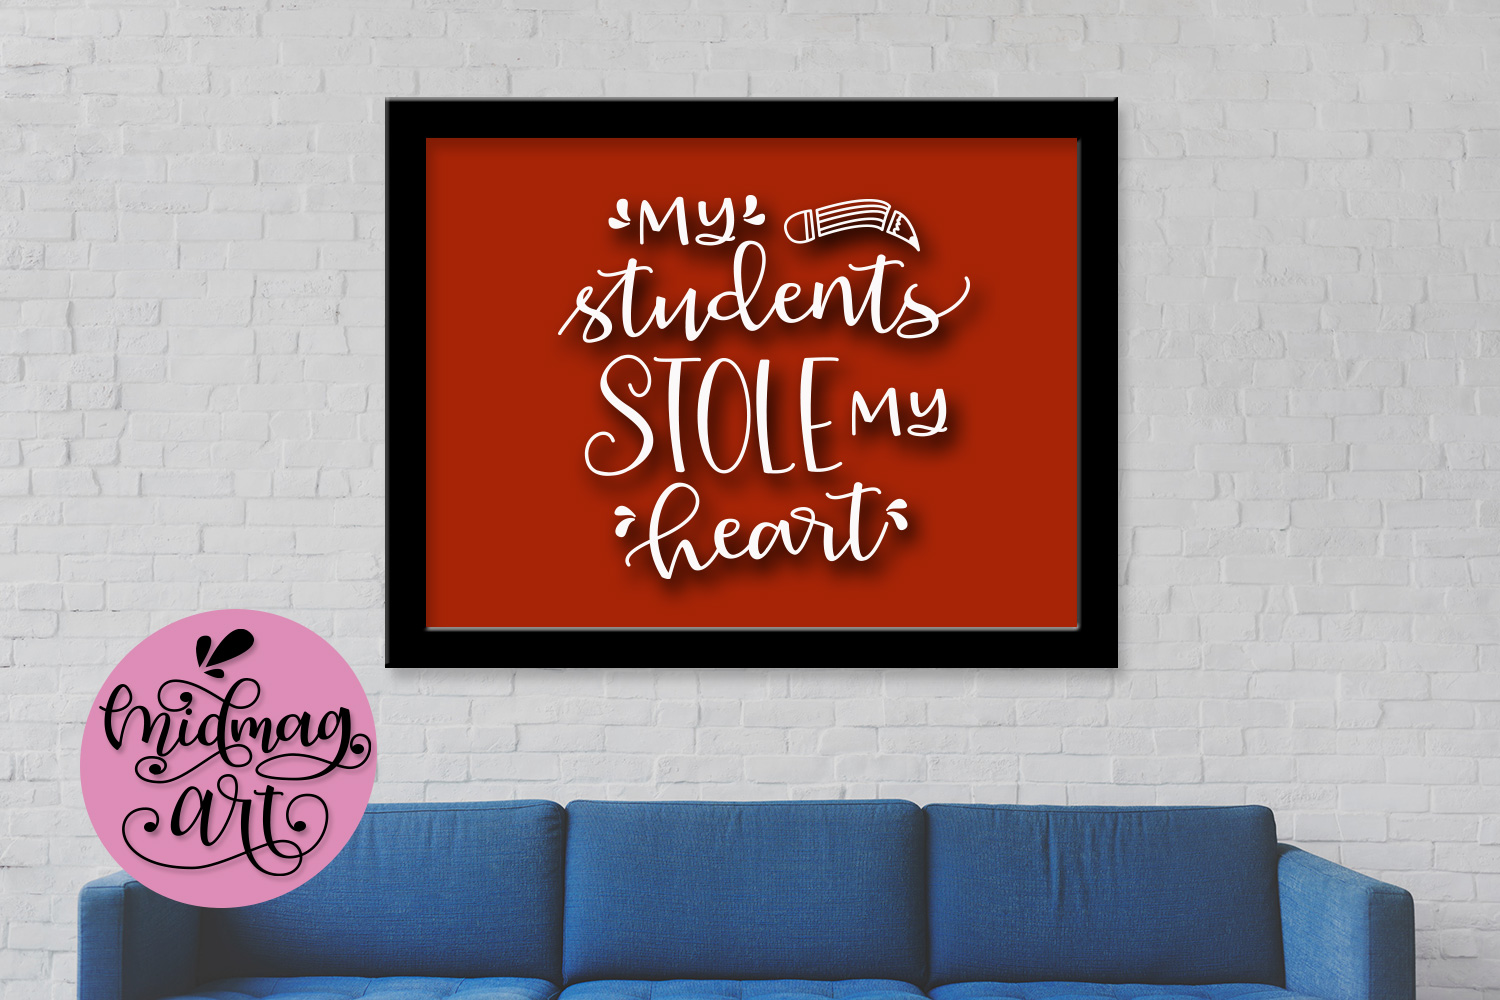 My students stole my heart svg, png, jpeg, eps and dxf example image 3